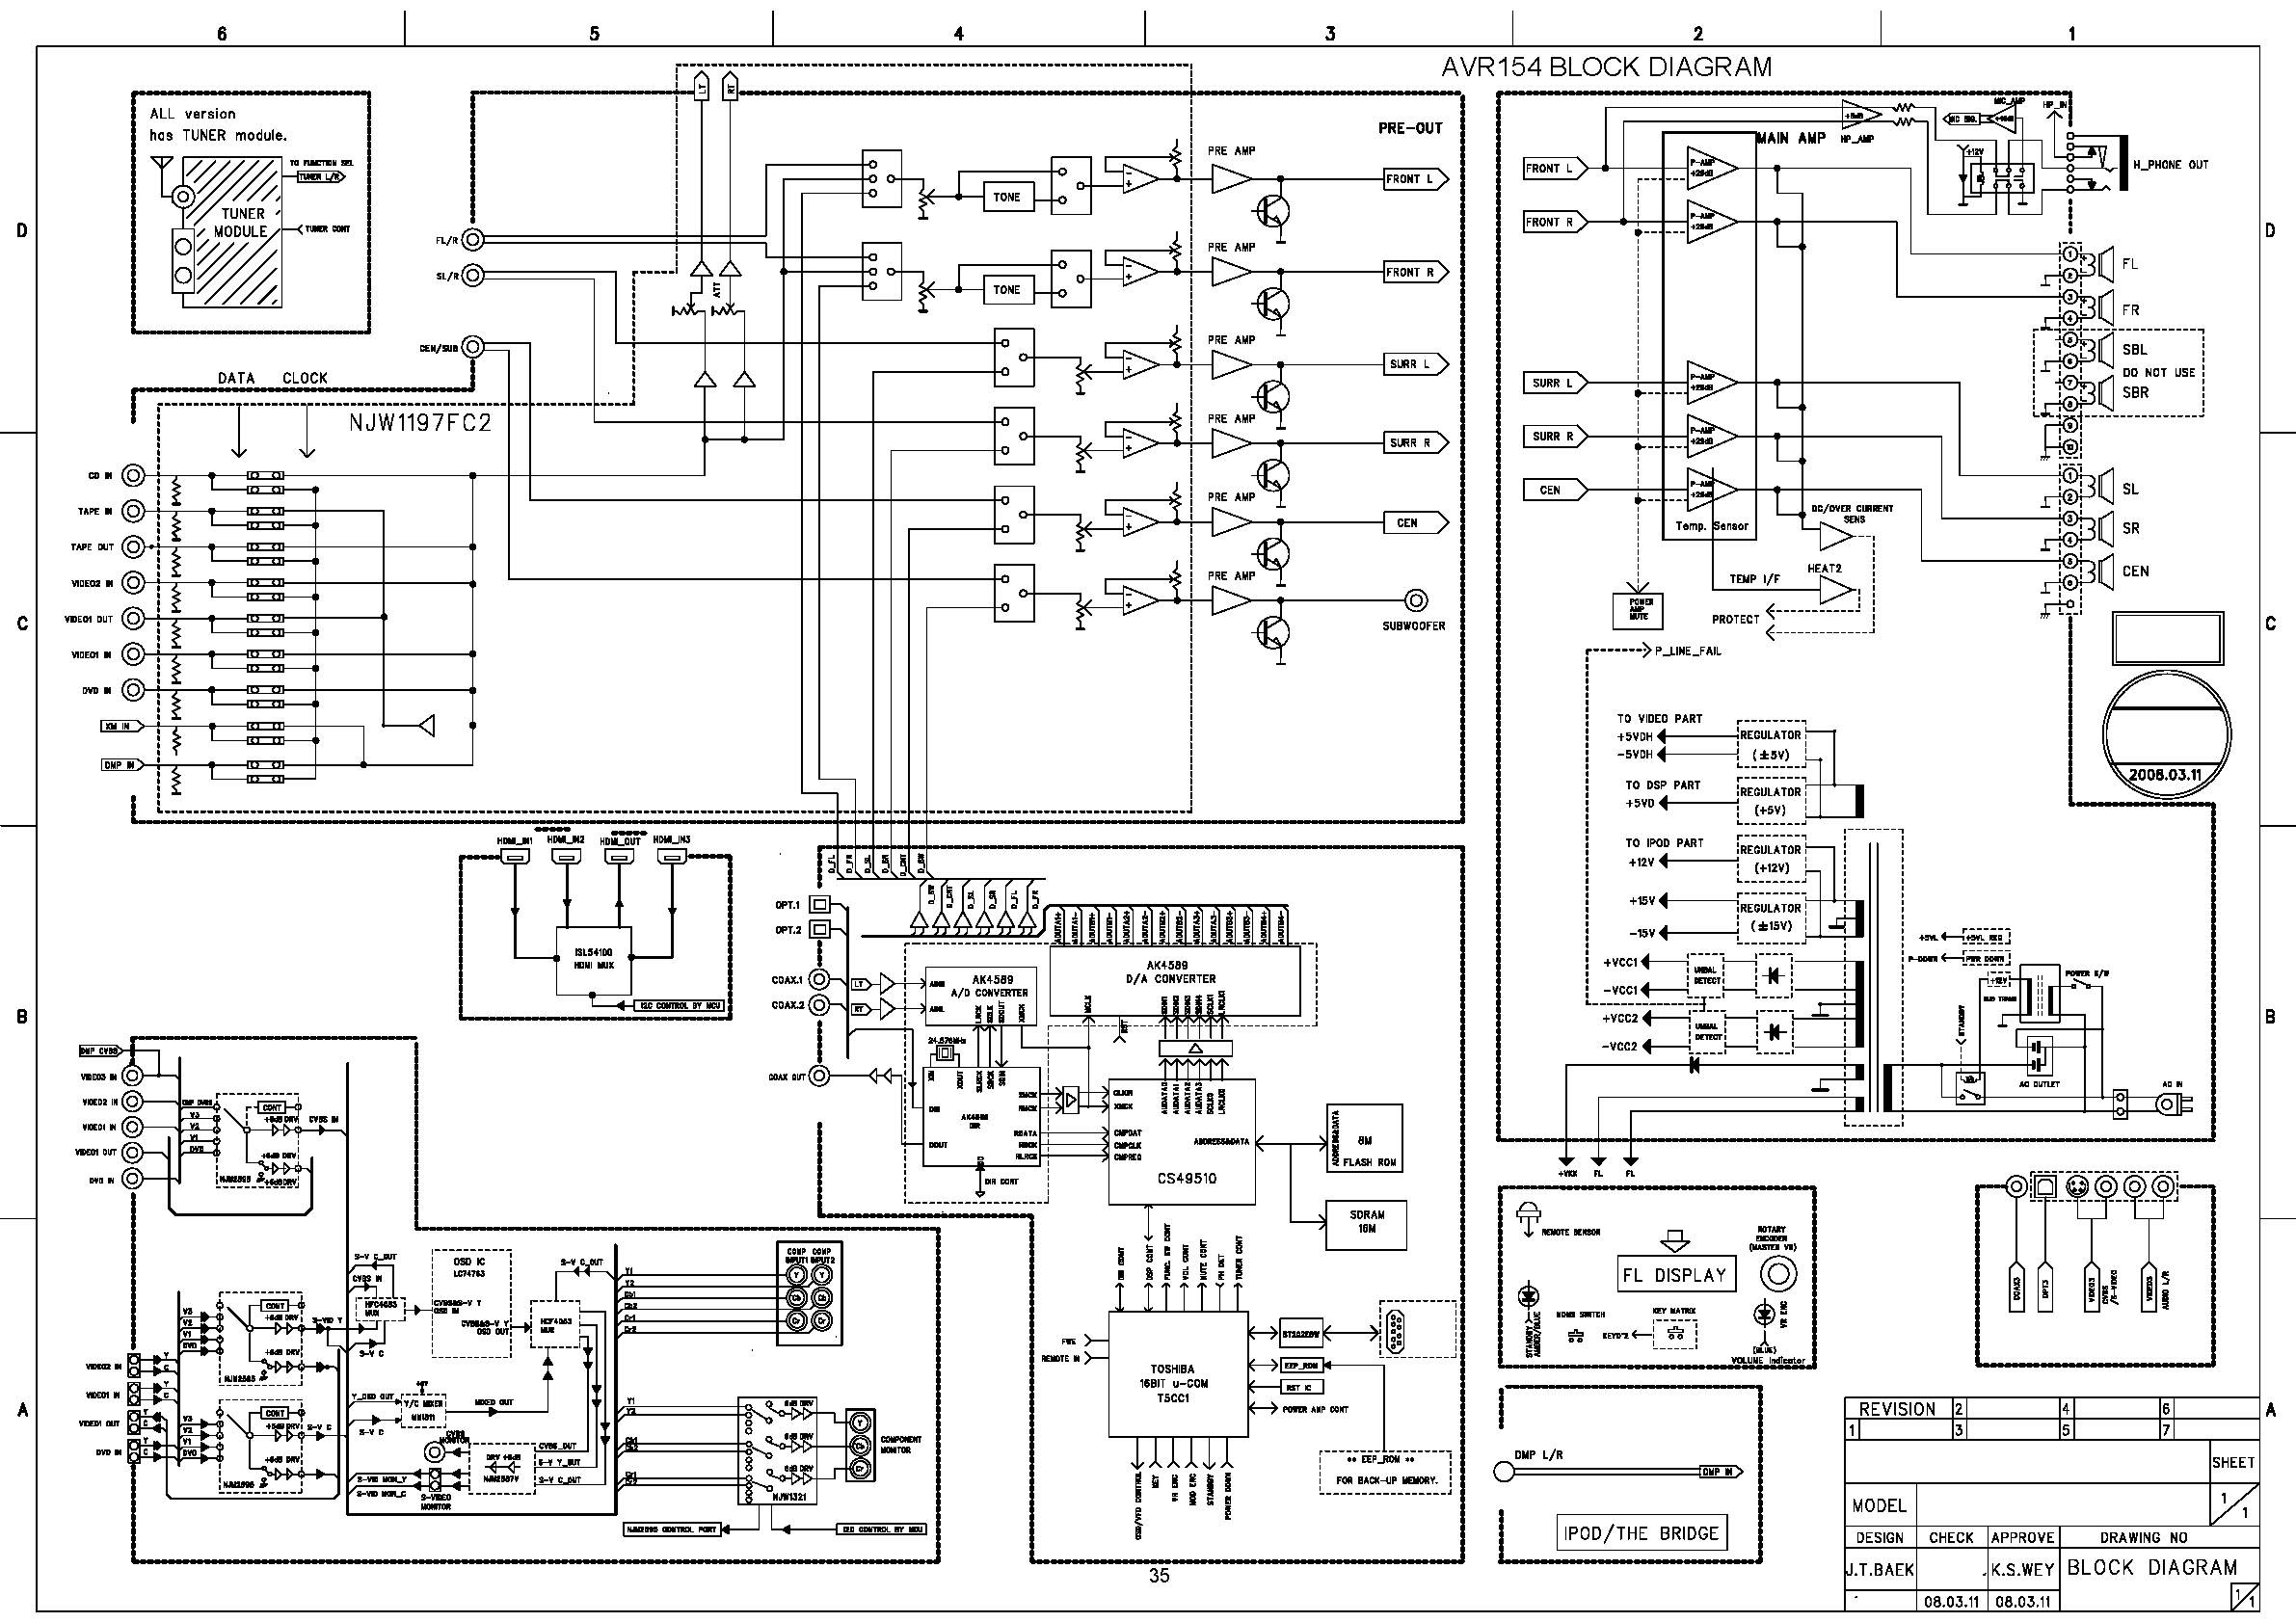 [DIAGRAM] Diagnostics Bi Phase Gmc W4500 Relay Diagram